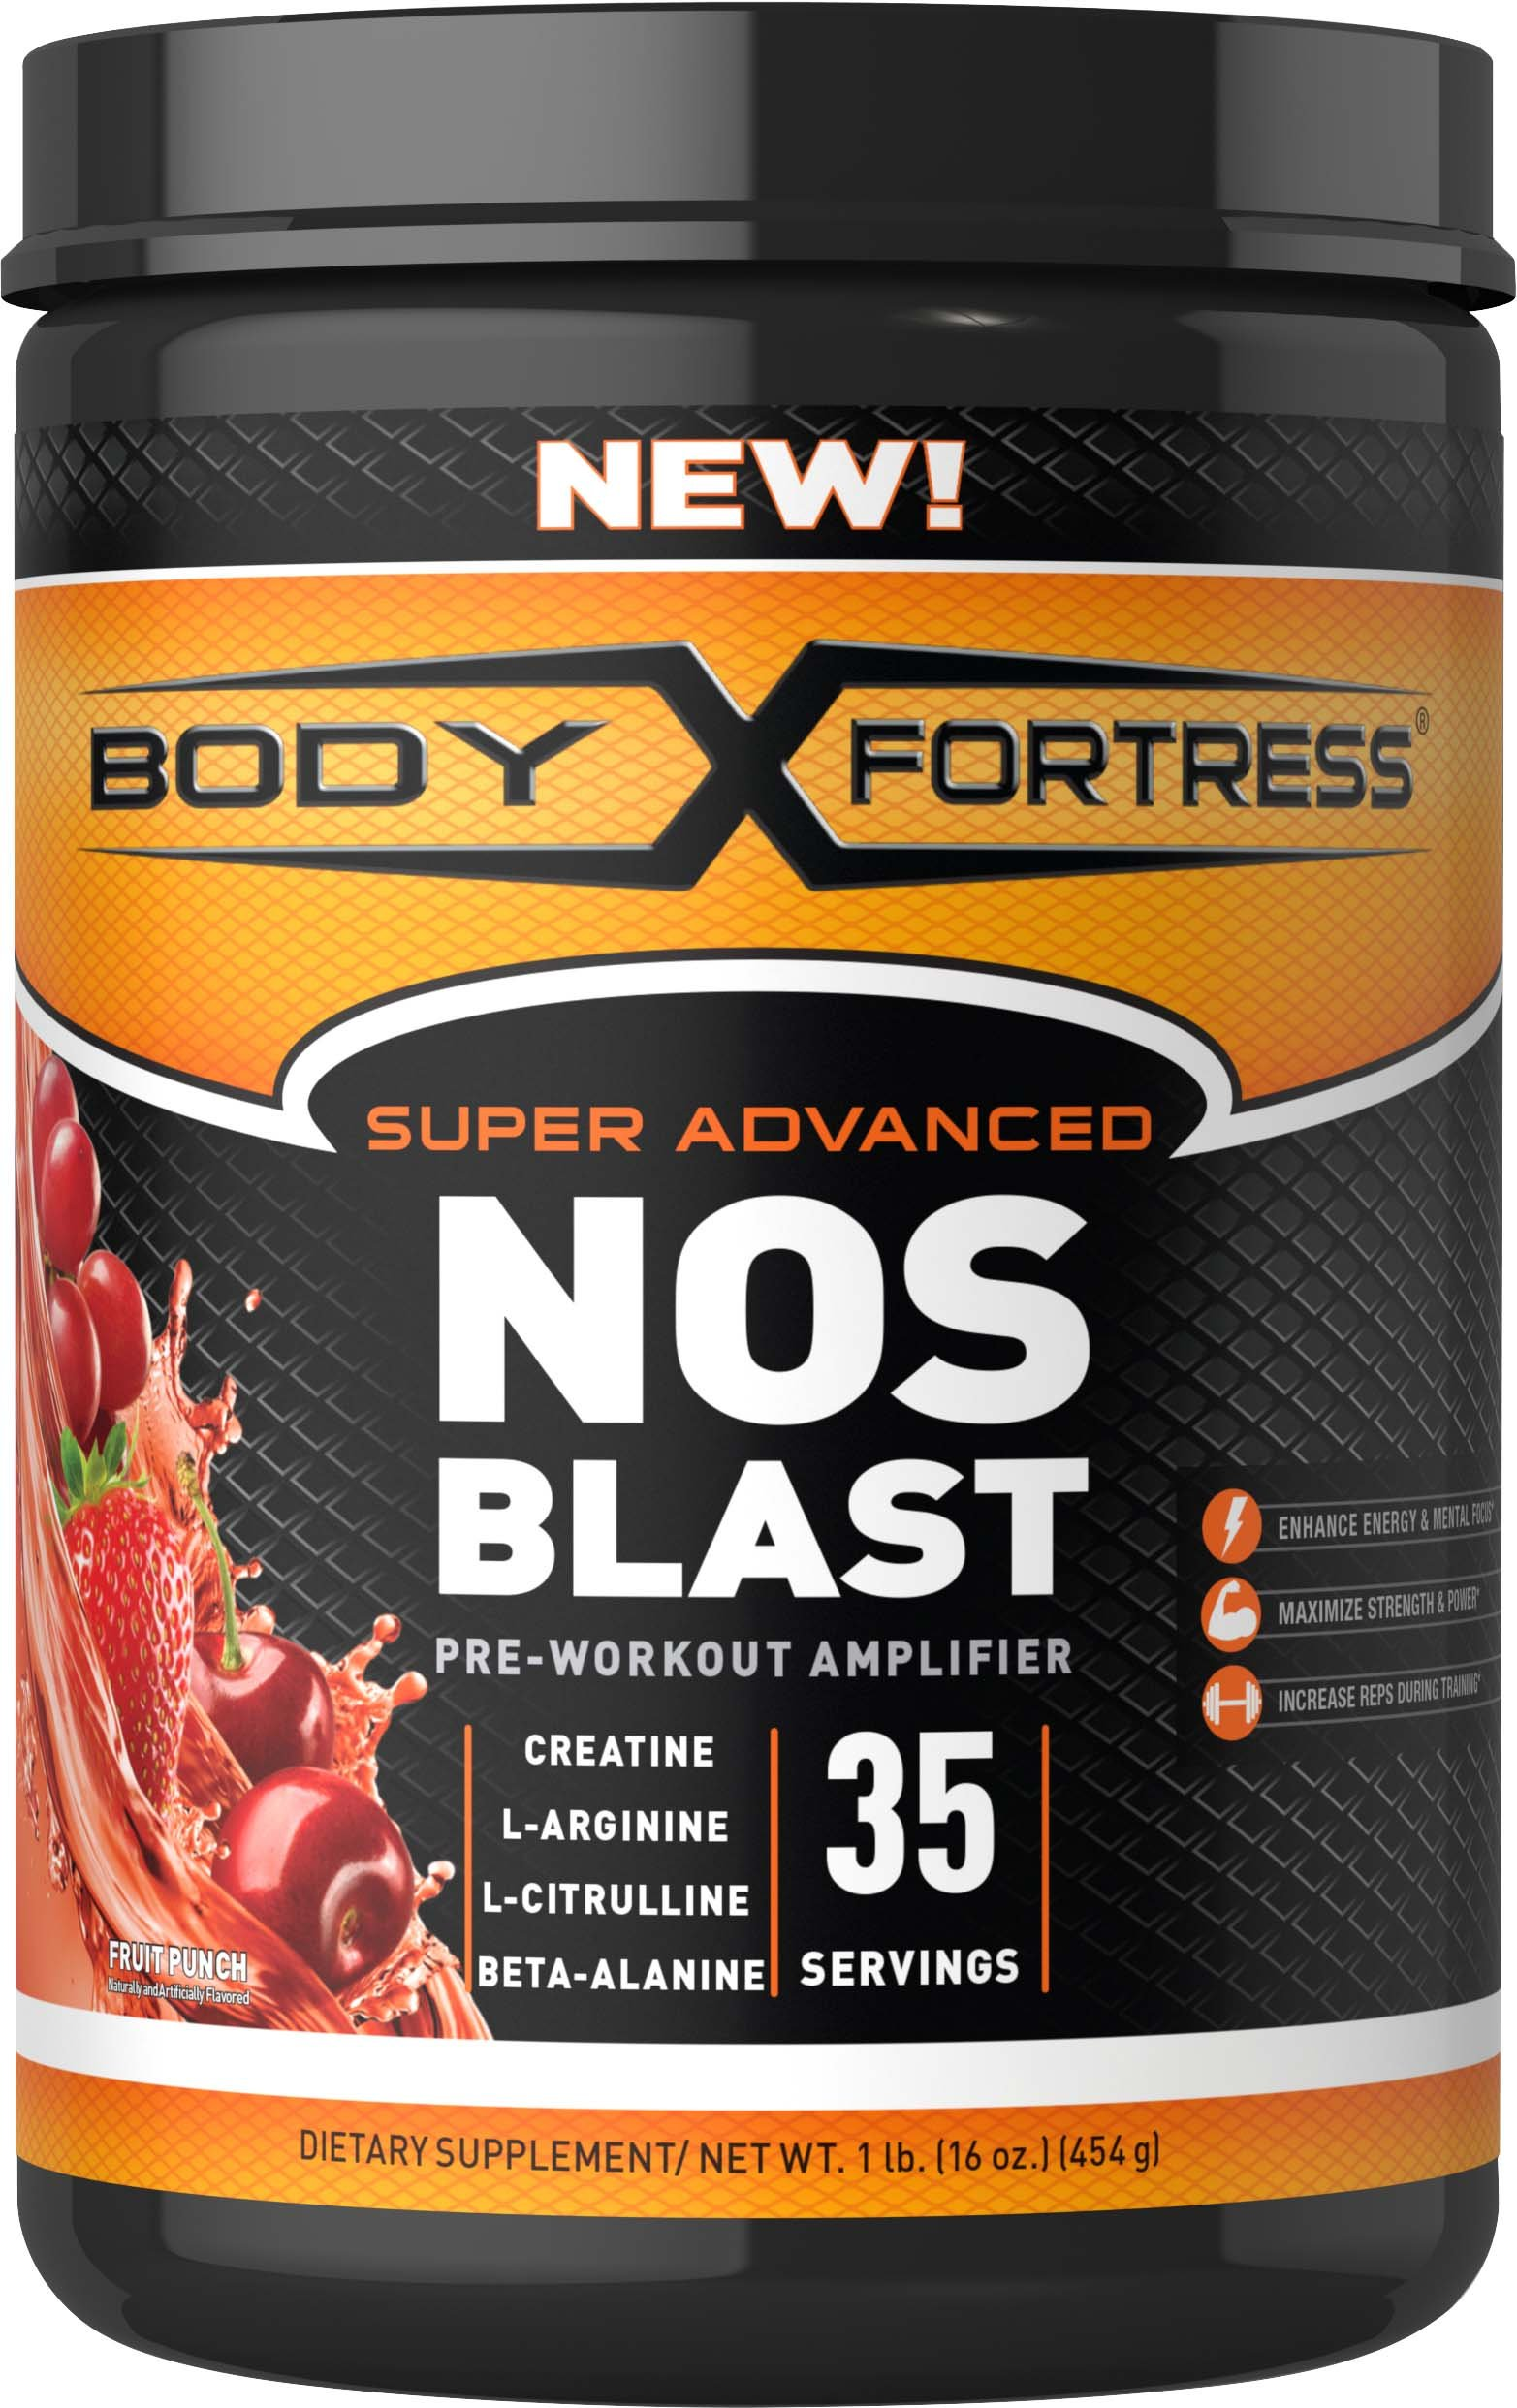 Body Fortress NOS Blast Pre Workout Amplifier by Body Fortress